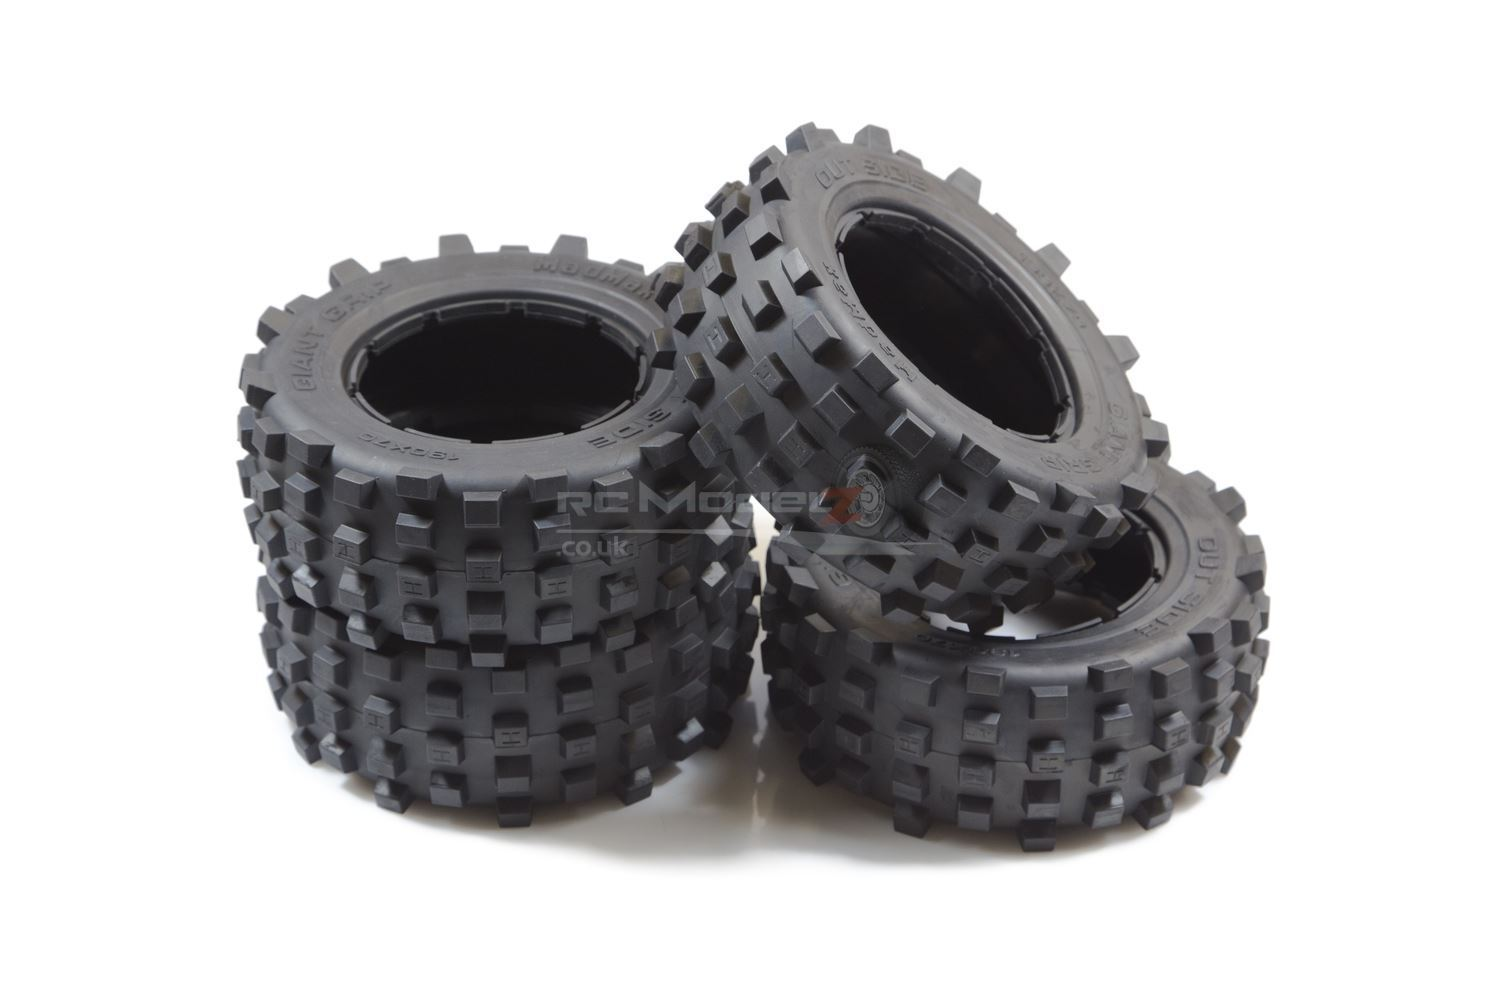 Mad Max Giant Grip Tyres - Full Set For KM X2 & Losi 5ive 1 5th RC